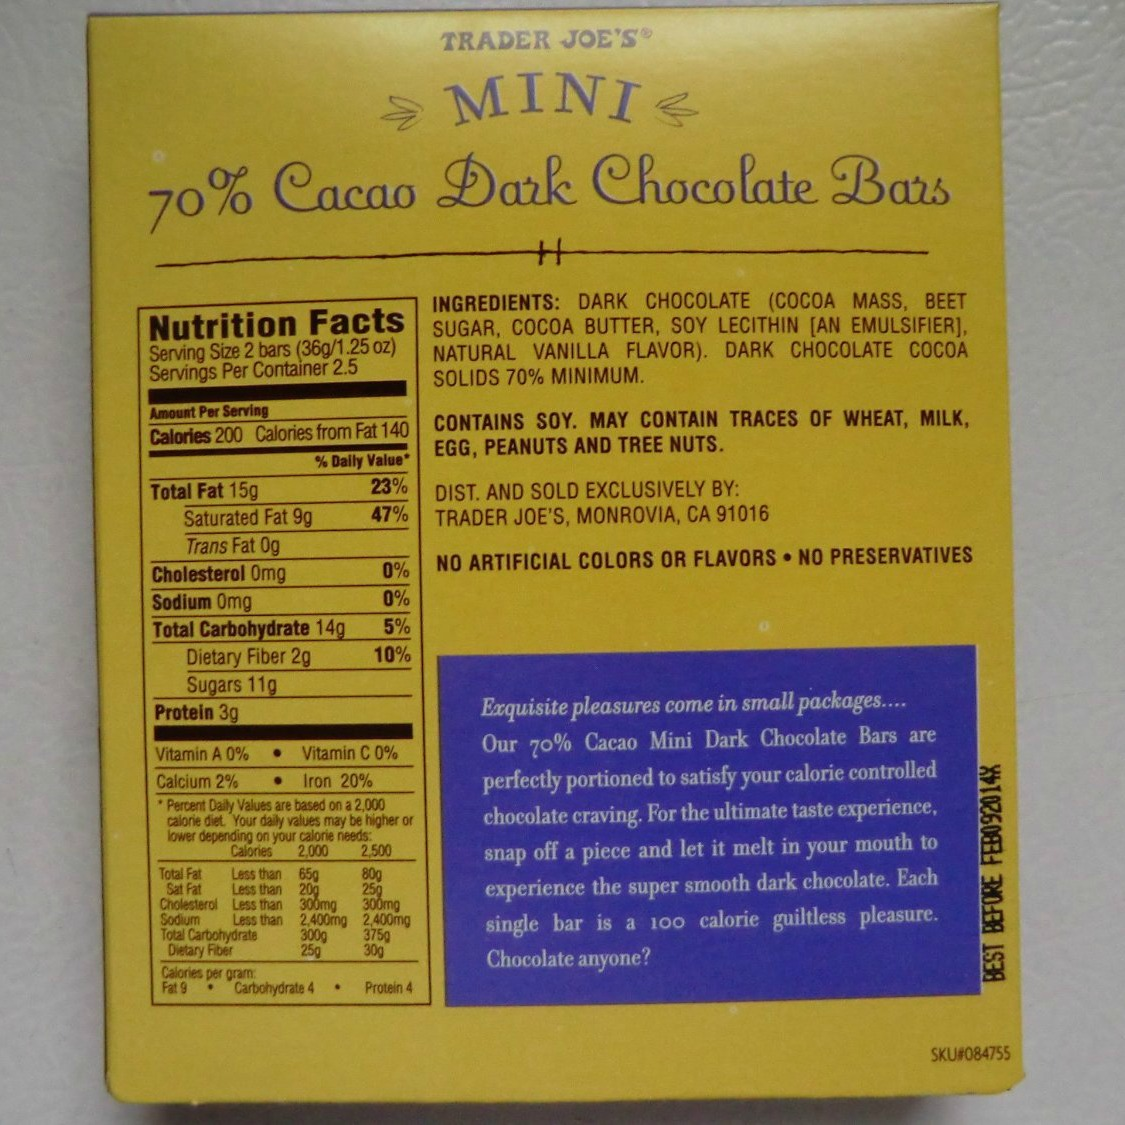 Trader Joes Mini 70 Cacao Dark Chocolate Bars